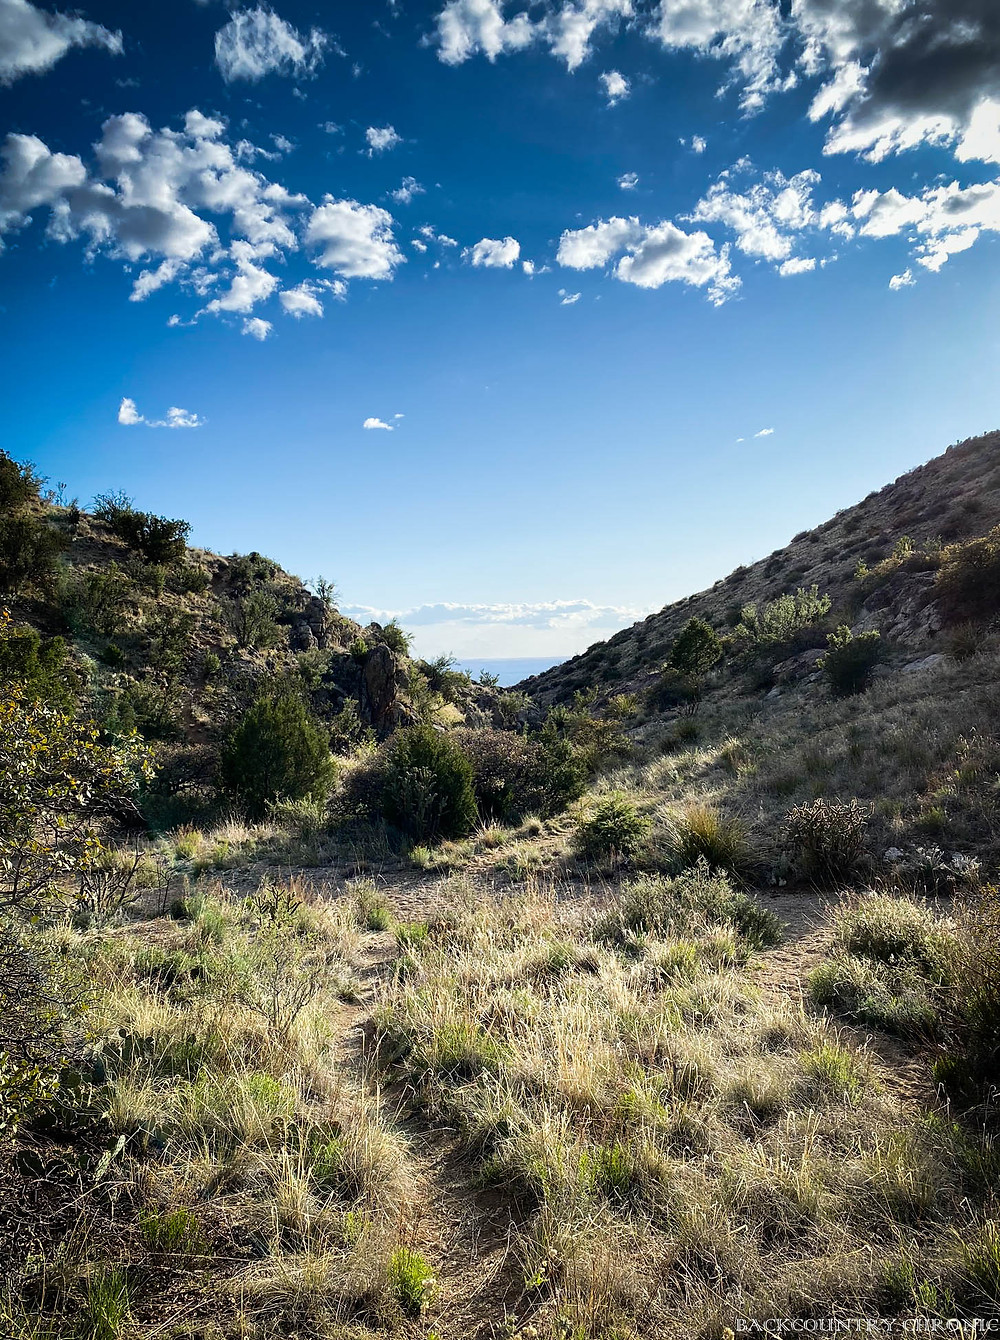 A hiking trail in the Albuquerque foothills